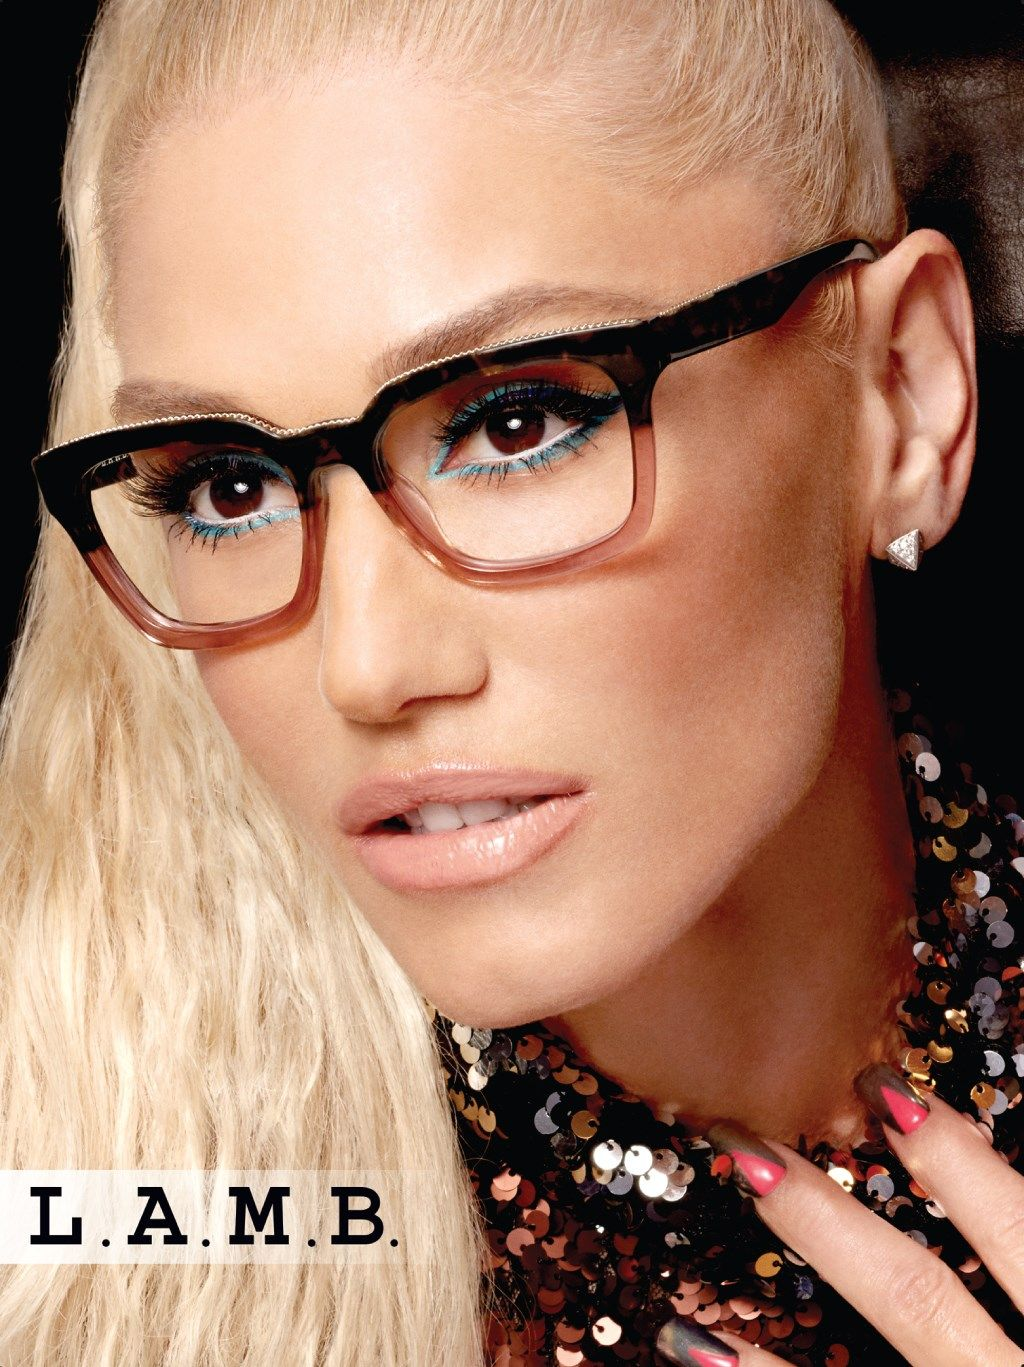 510212ba4 L.A.M.B. Brand Story | Tura Womens Glasses Frames, Ladies Glasses, Cute  Glasses, New